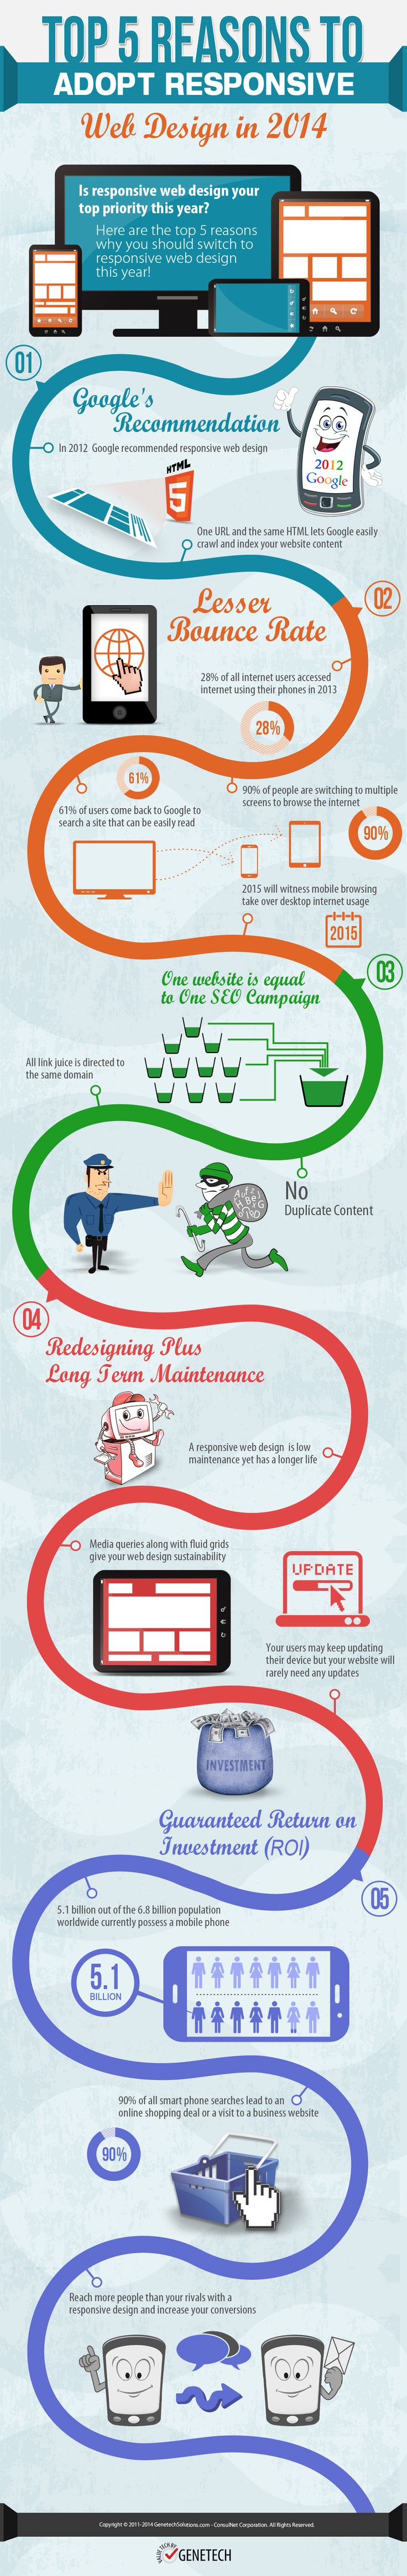 Top 5 Reasons to Adopt Responsive Web Design in 2014 #Infographic #RWD #ResponsiveWebDesign